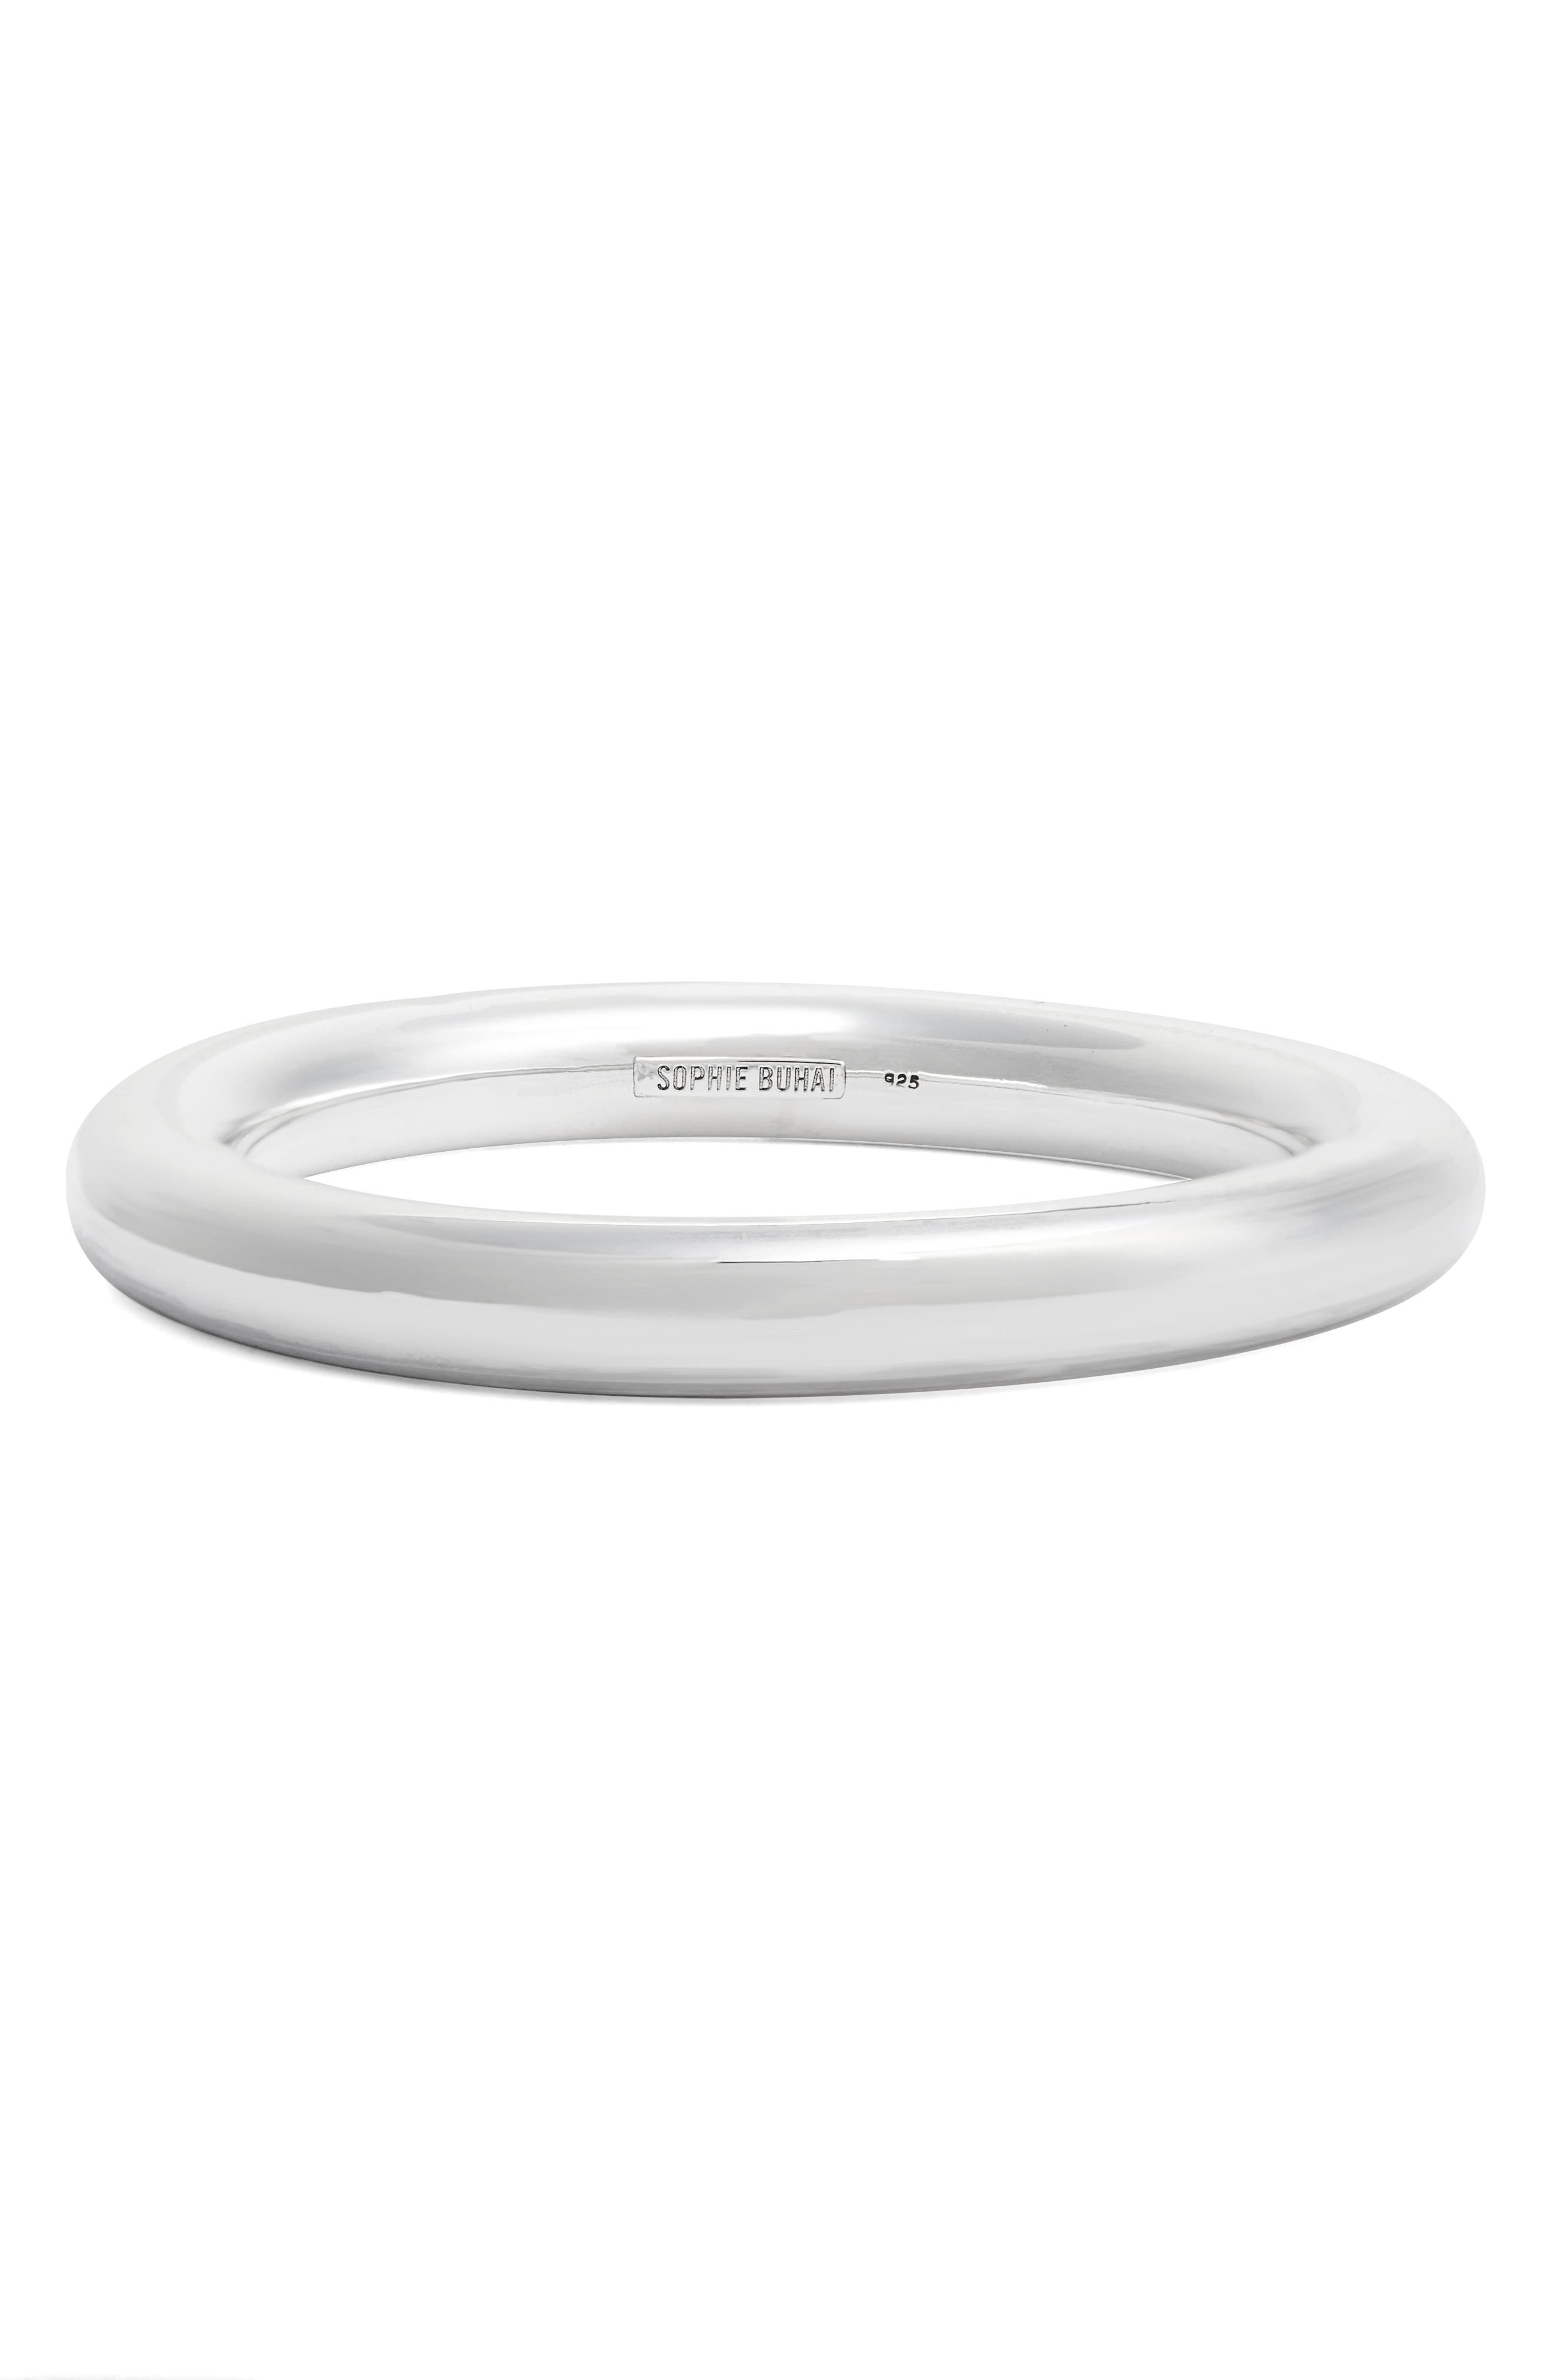 Alternate Image 1 Selected - Sophie Buhai Classic Circle Bangle